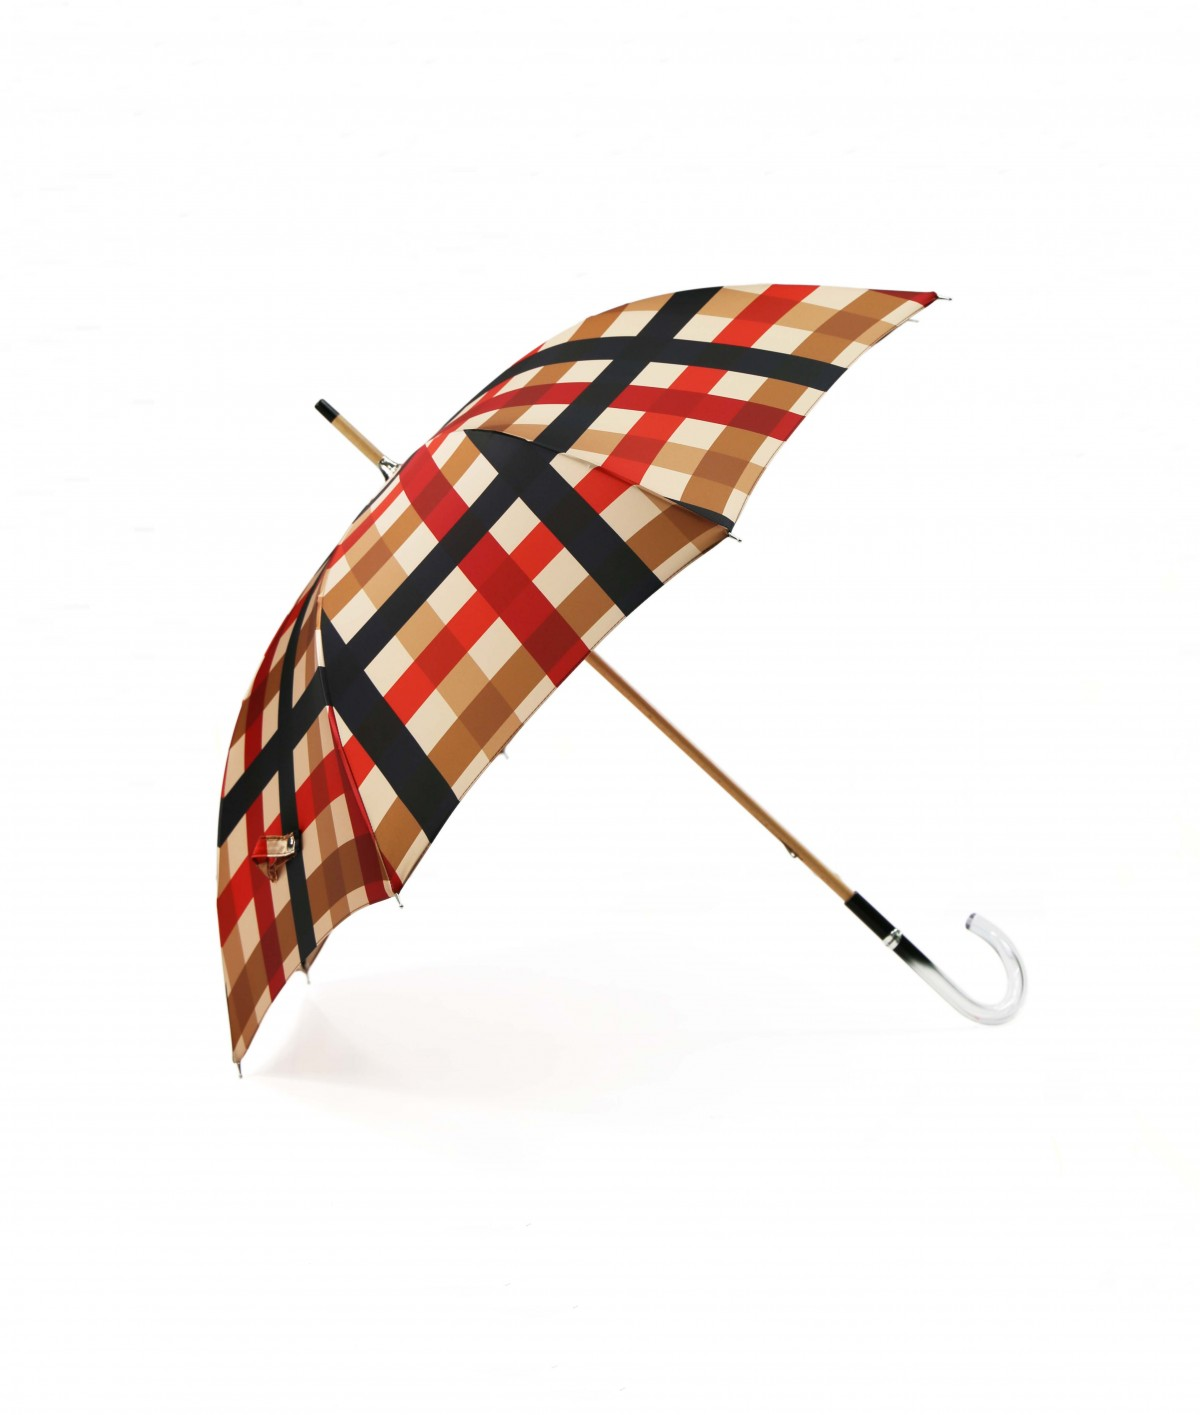 → Fancy Printed Satin Umbrella - Long Manual N°2 - Made in France by Maison Pierre Vaux French Umbrella Manufacturer